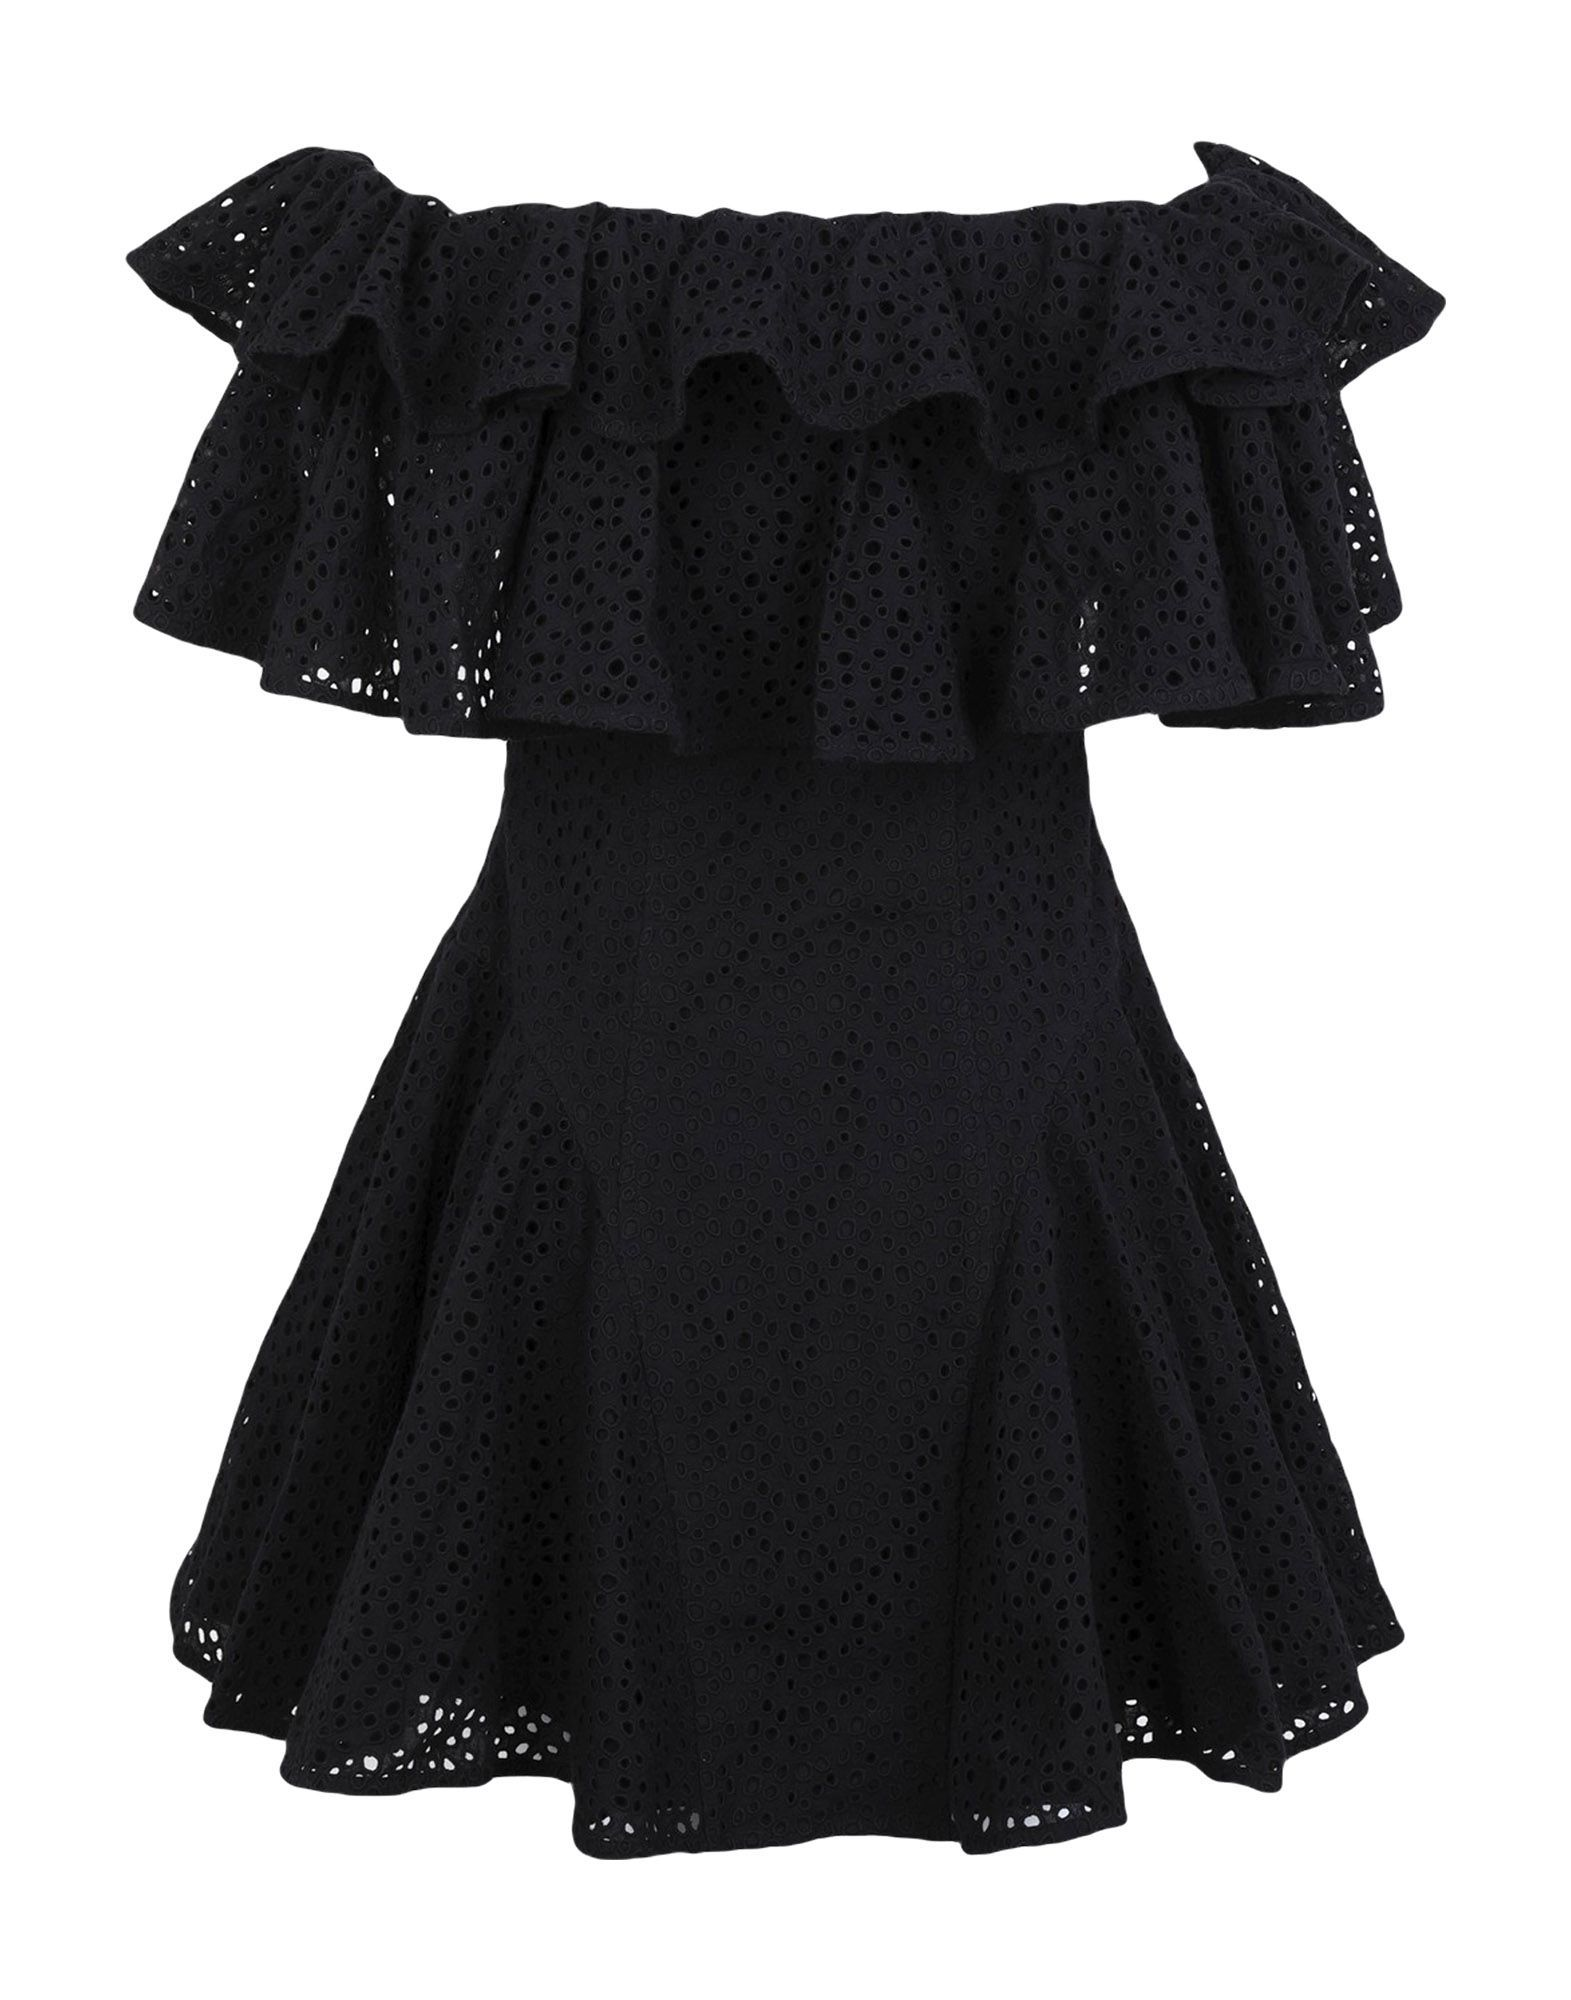 House Of Holland Black Lace Ruffle Dress